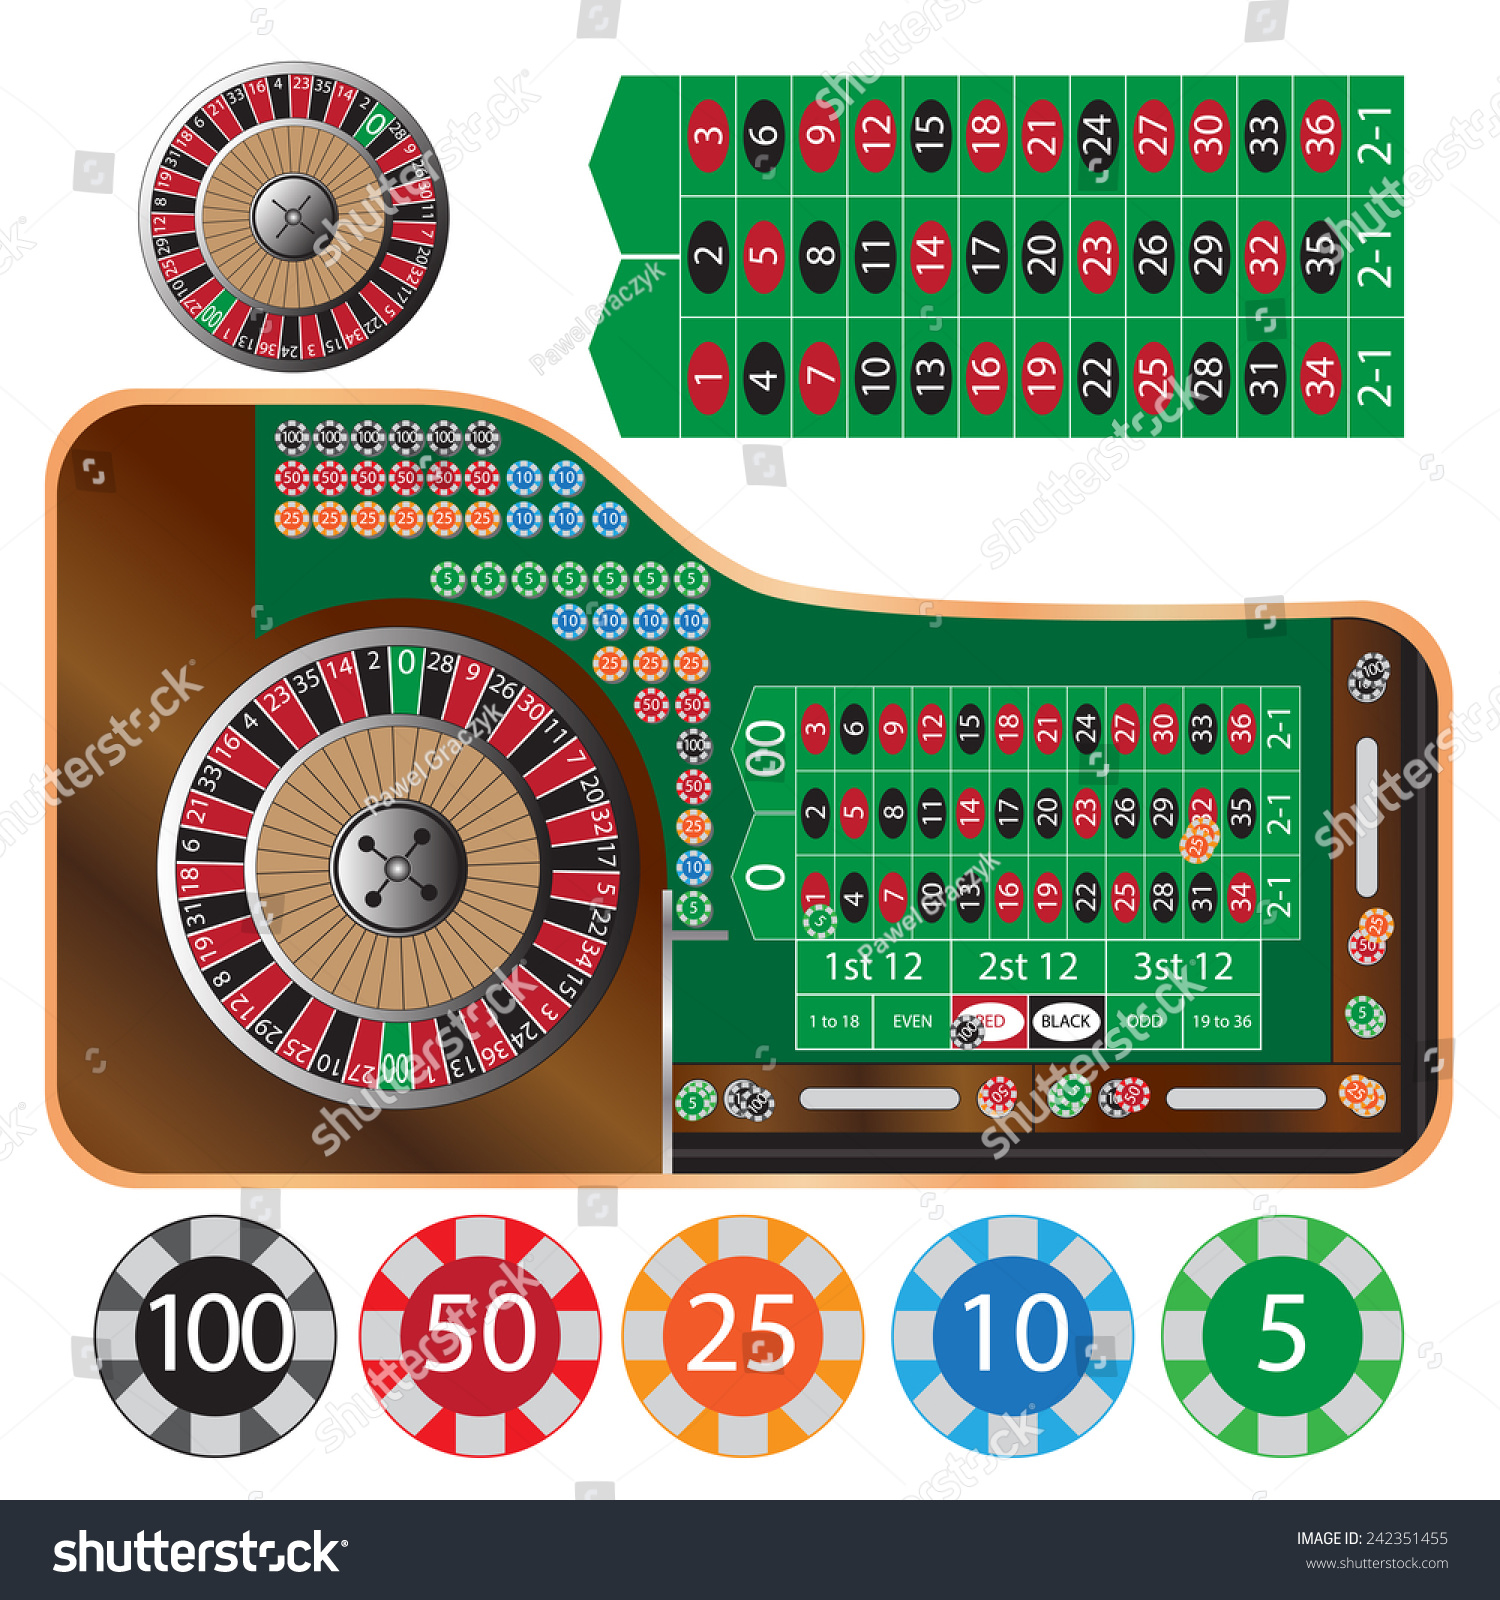 Traditional european roulette table vector illustration stock vector - Vector Illustration Of American Roulette Table And Tokens